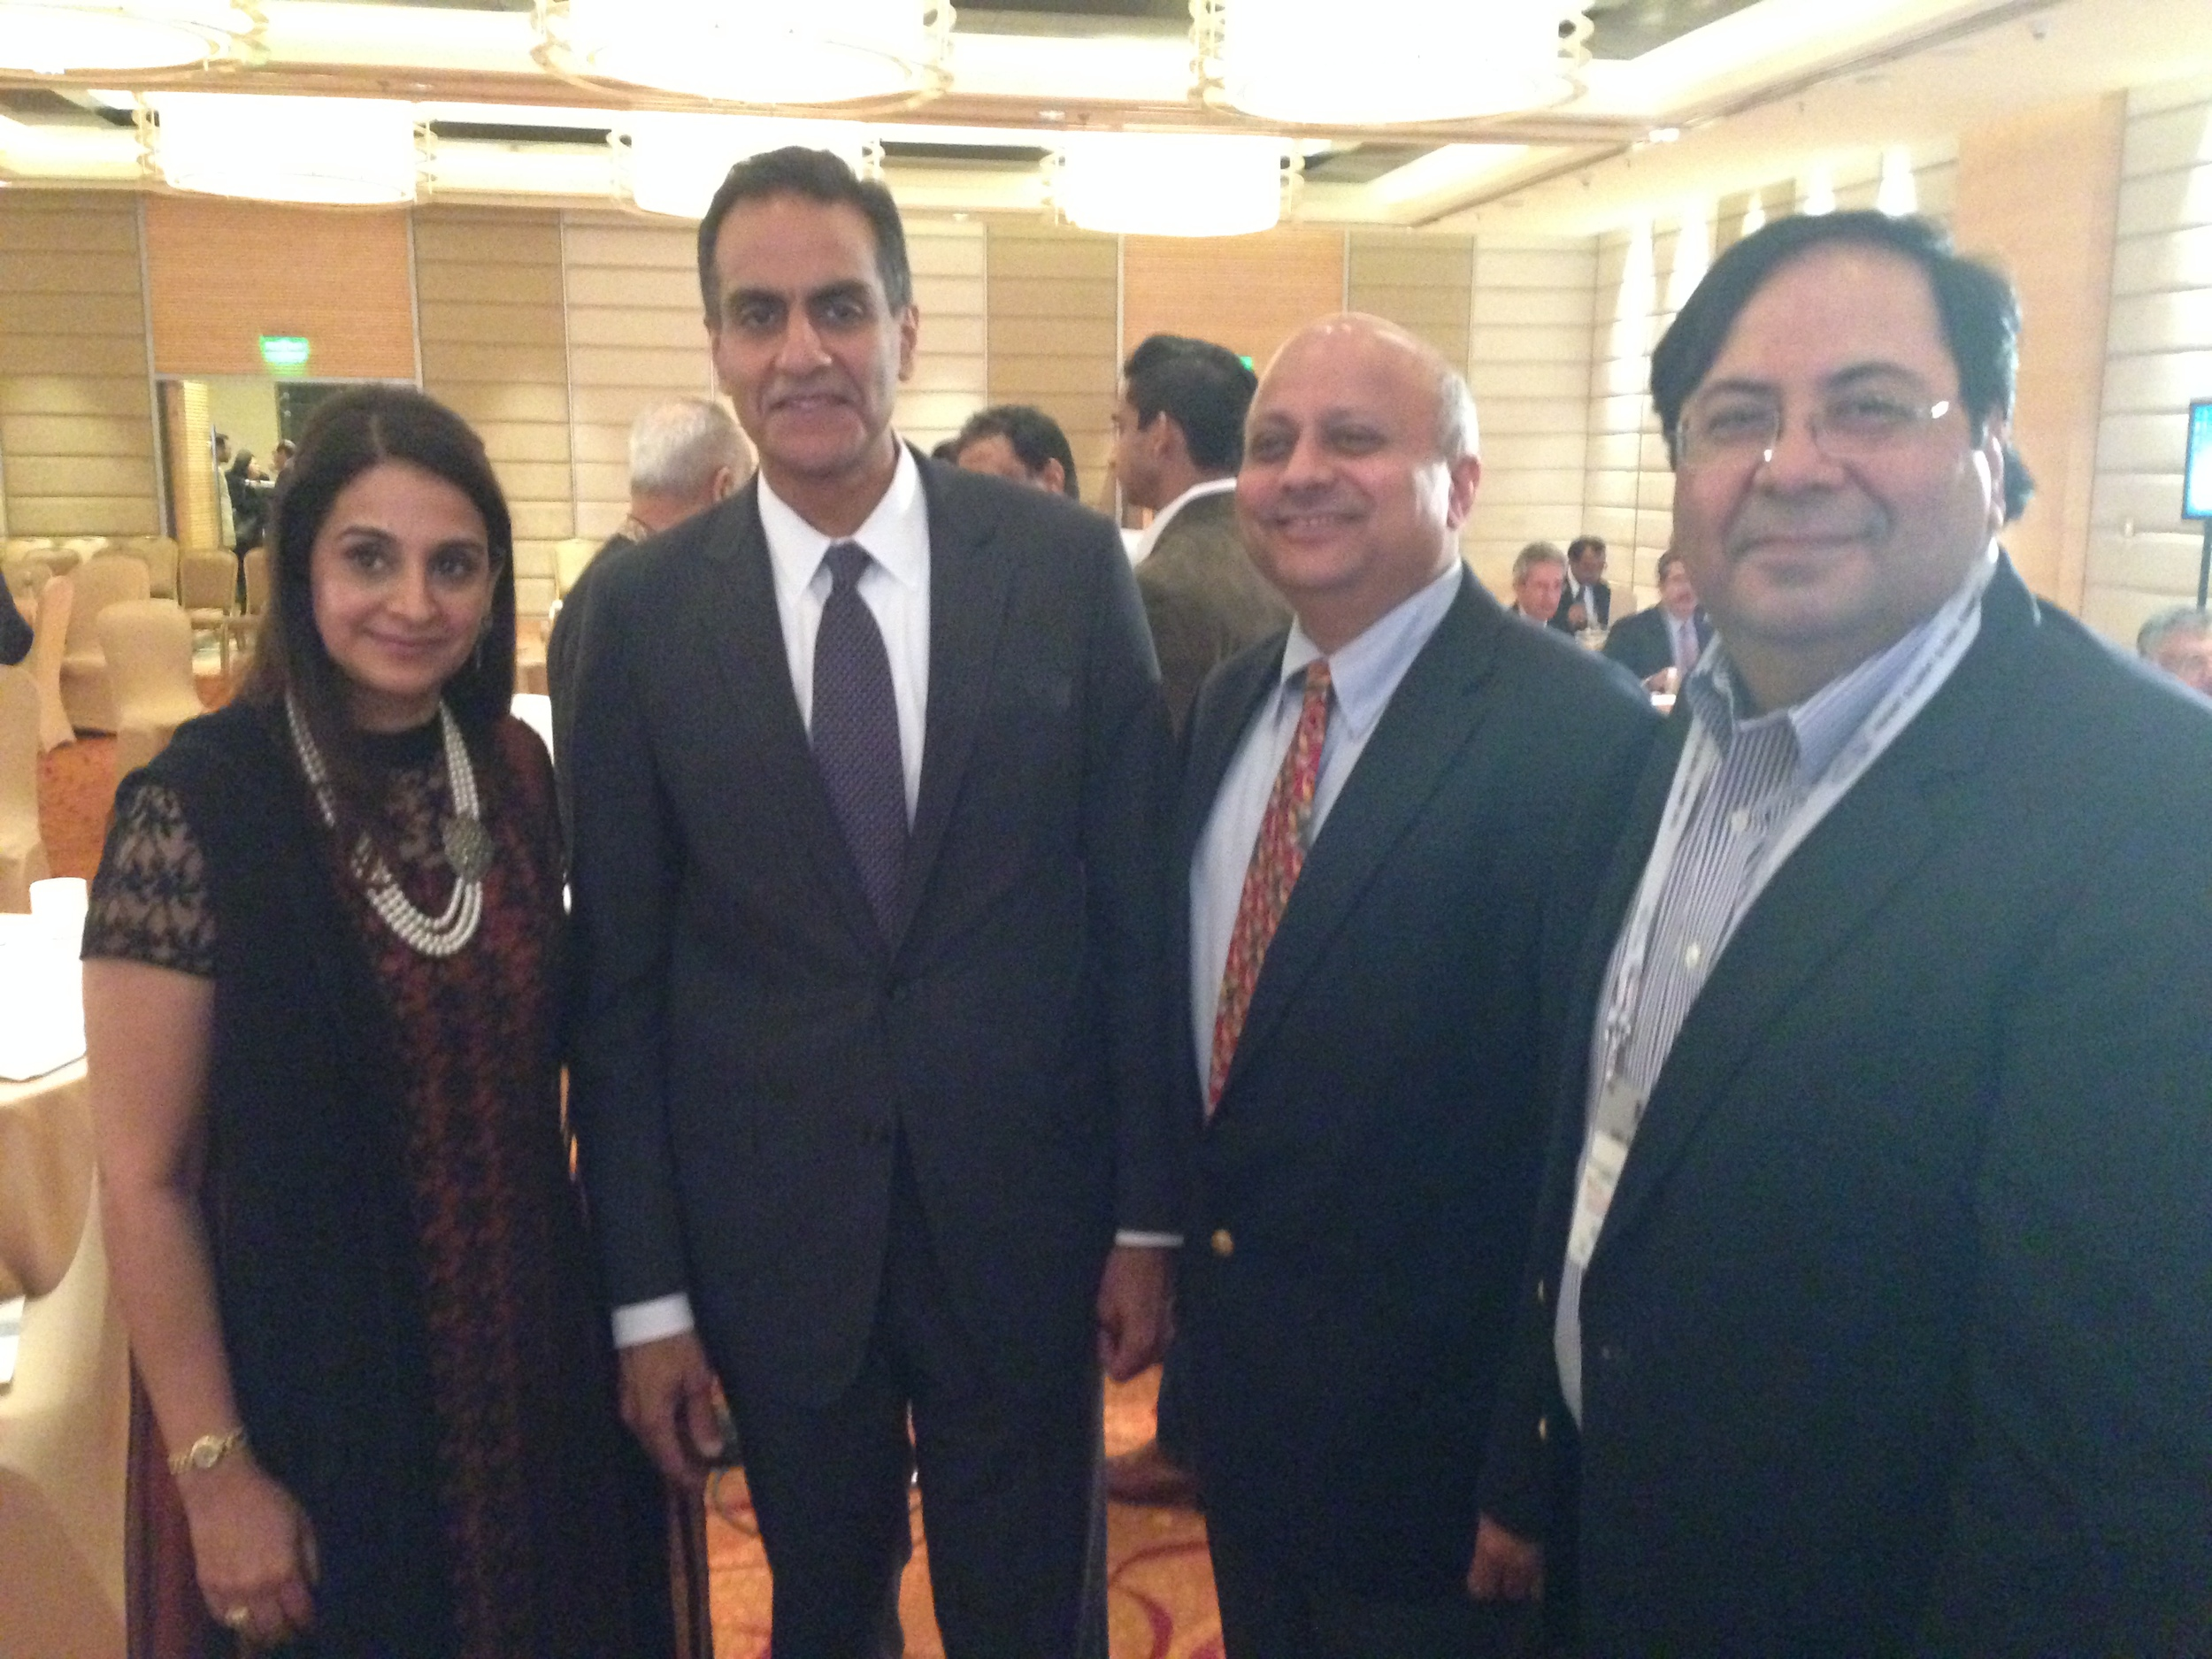 In Photos (Right to Left): Suresh Nichani, Vice Chairman of RootCorp with Mr. Richard Rahul Verma, US Ambassador to India, and fellow YPO'er Mr. Vimal Ambani.